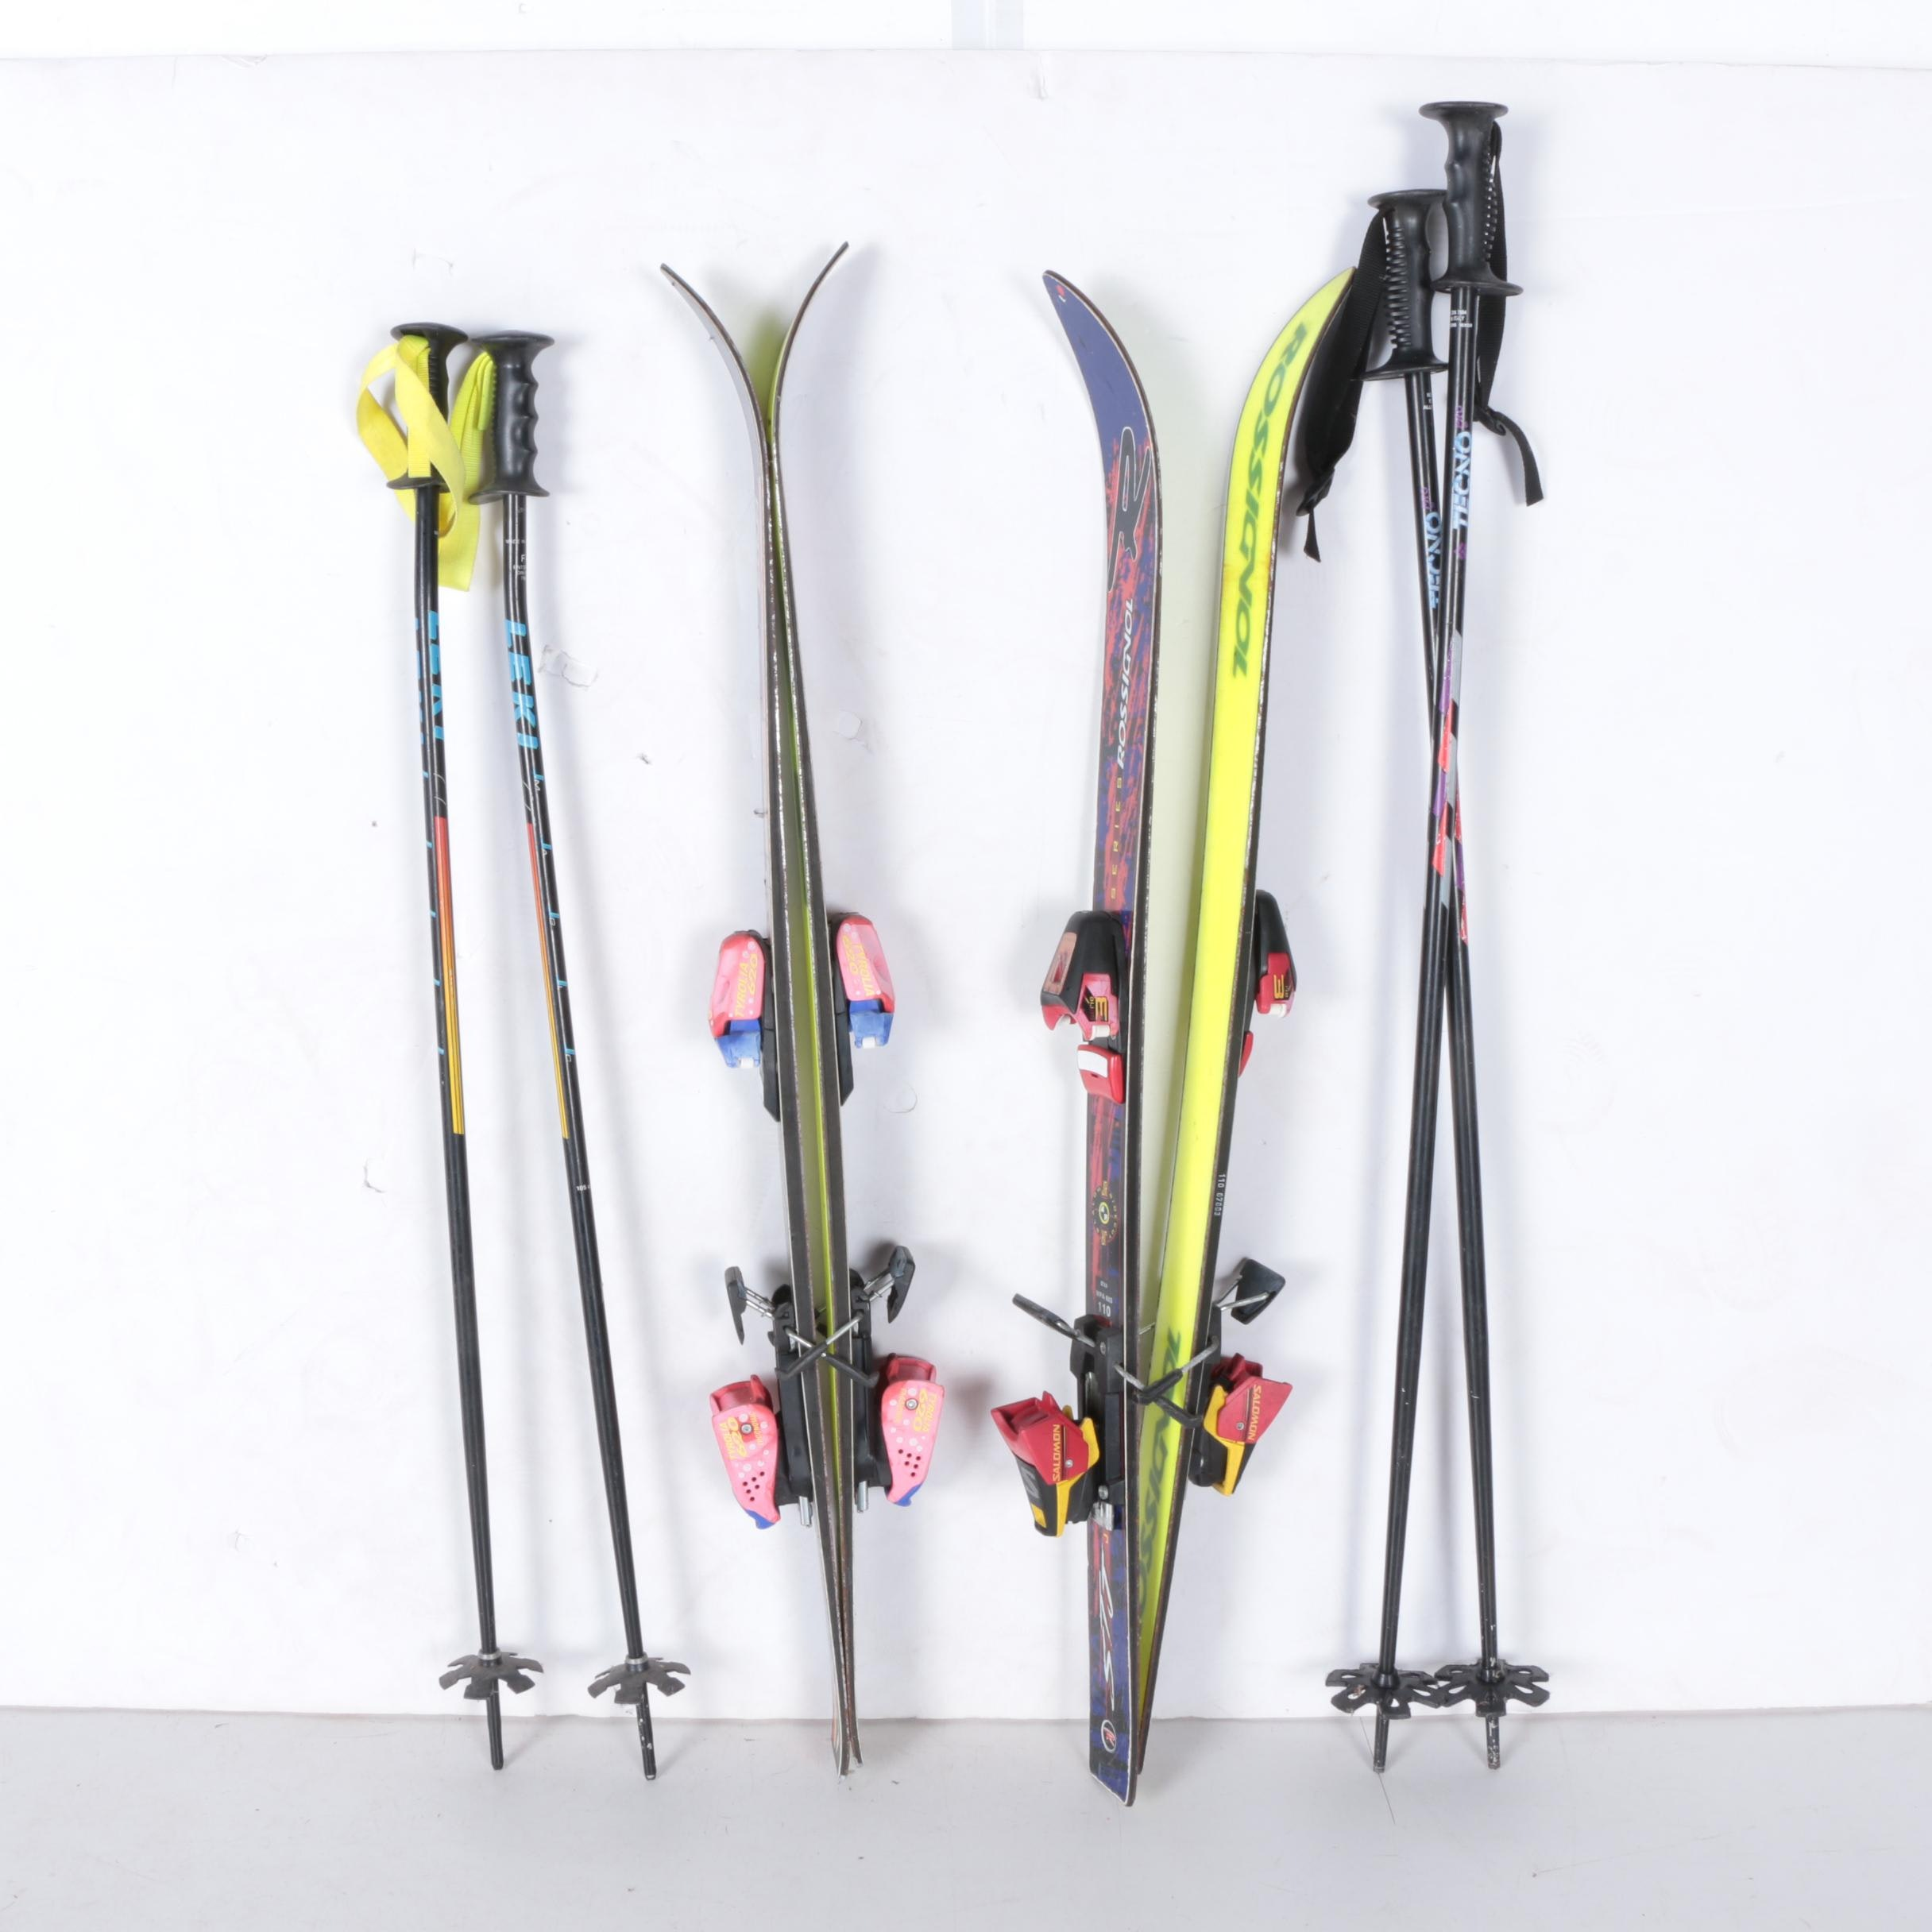 Rossignol and Elan Children's Skis with Poles